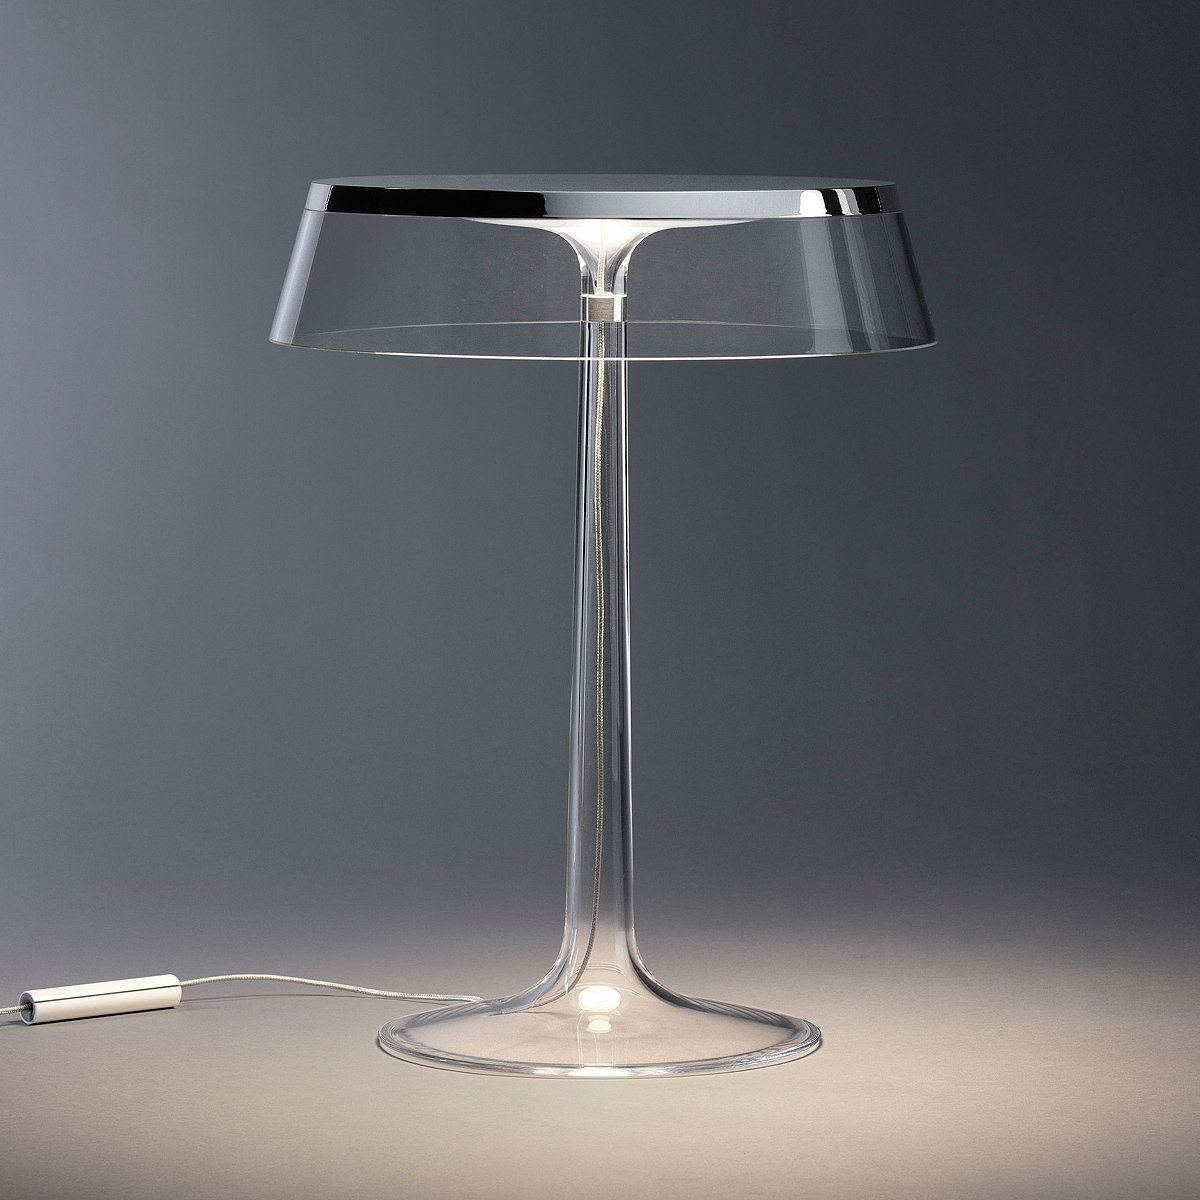 Philippe Starck Designs Two New Products for FLOS